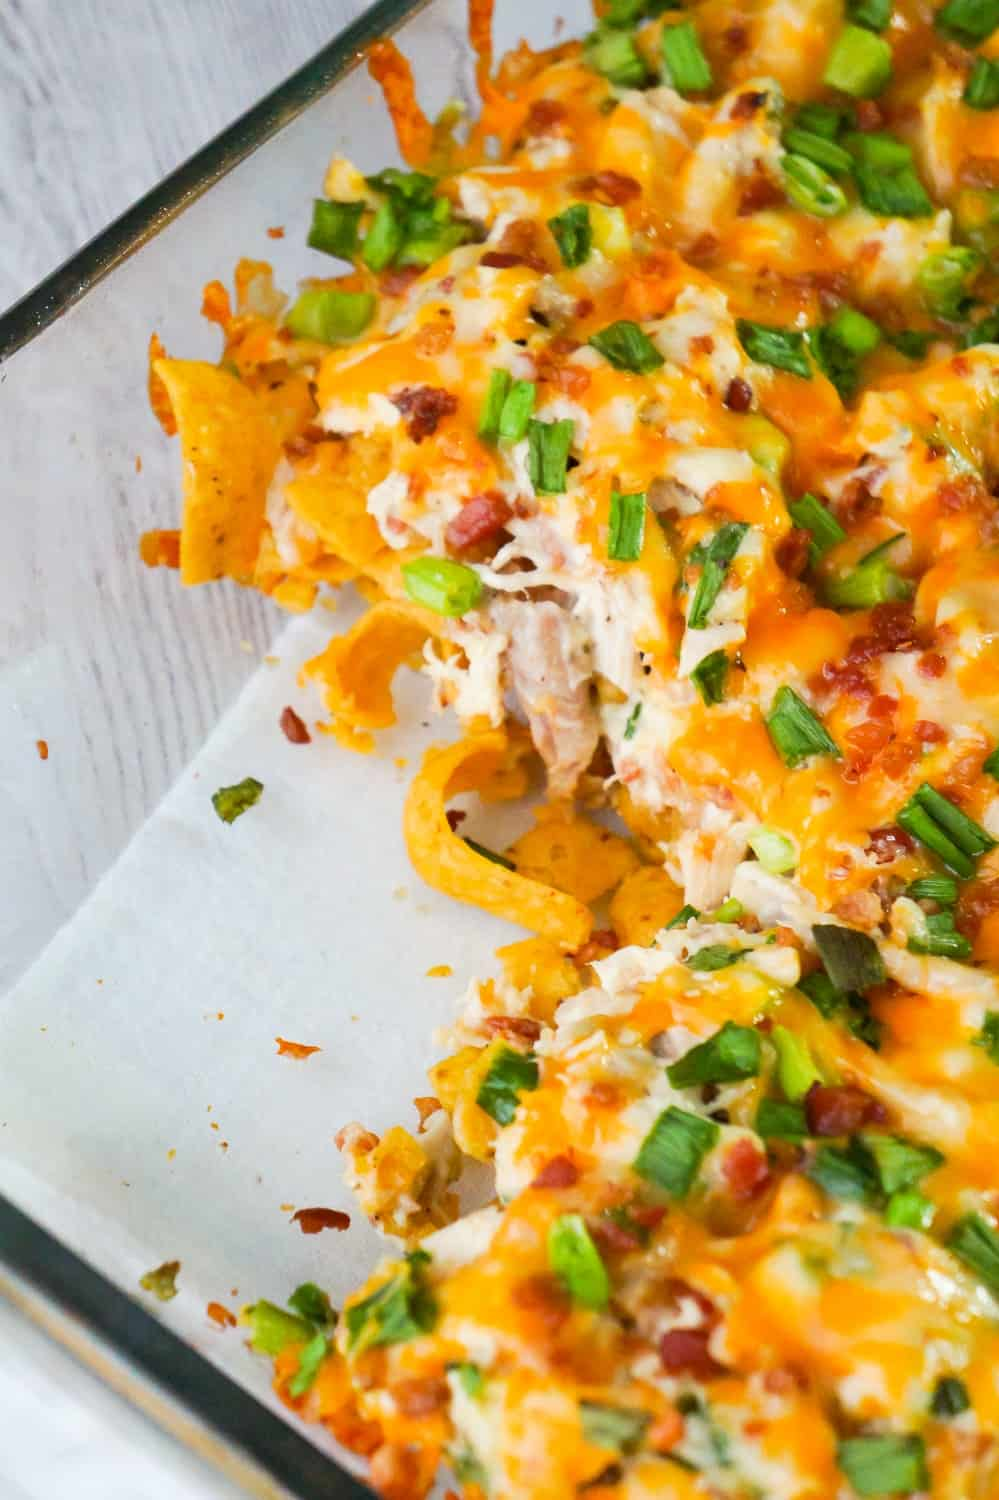 Chicken Bacon Ranch Frito Pie is a quick and easy dinner recipe using rotisserie chicken. This tasty casserole starts out with a base of Frito's corn chips topped with a mixture of shredded chicken, real bacon bits, green onions and ranch dressing, finished off with a layer of shredded cheese.